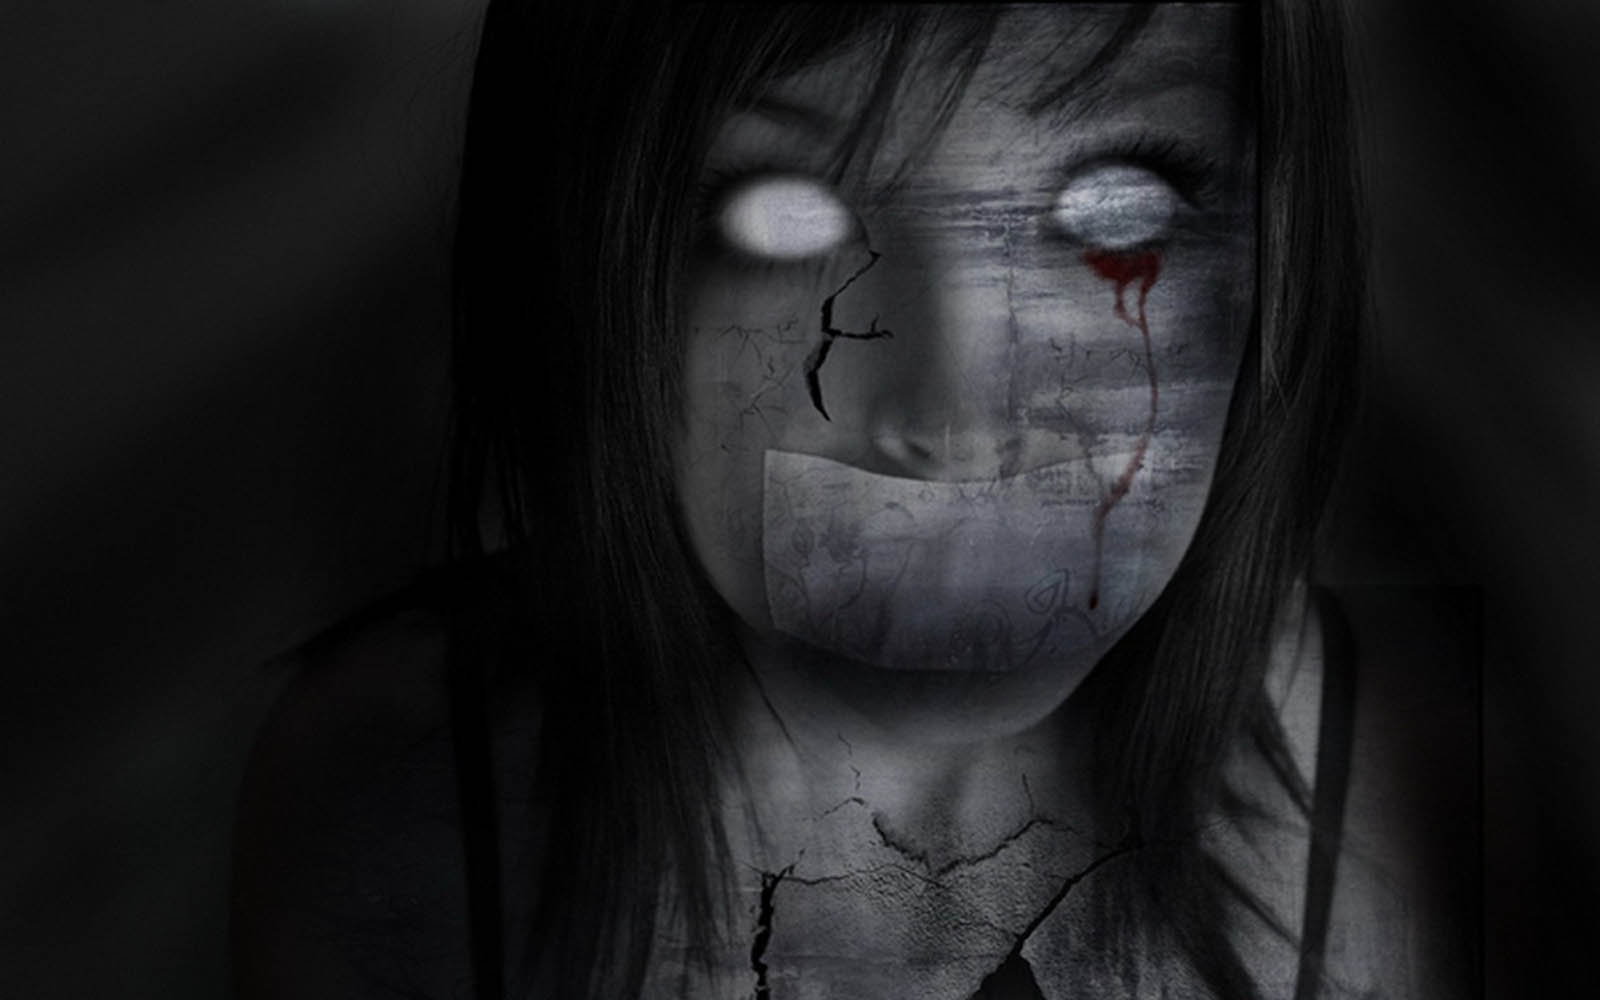 wallpapers Dark Gothic Wallpapers 1600x1000